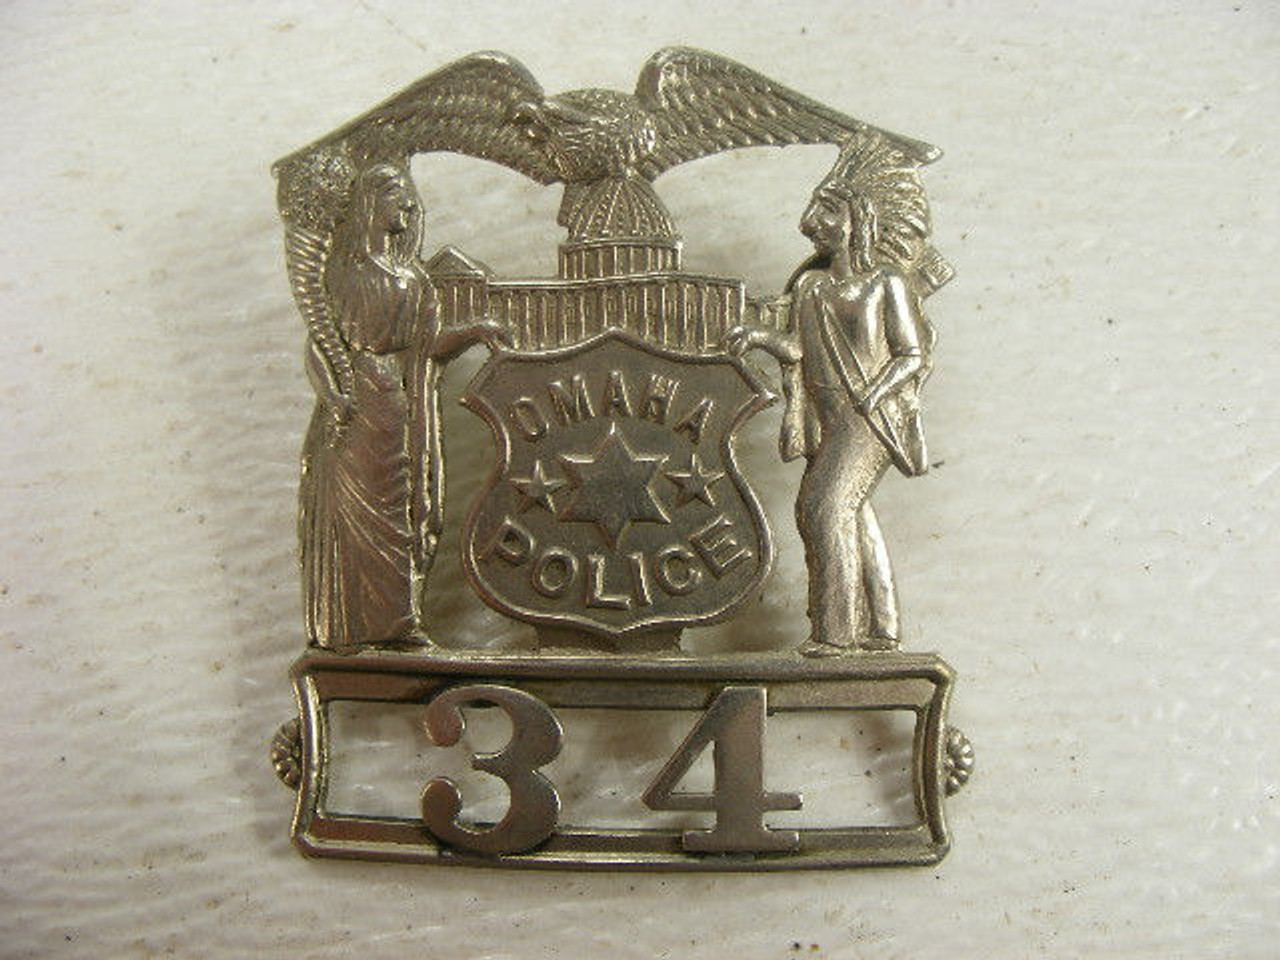 An old Omaha Police badge depicting Native Americans and an